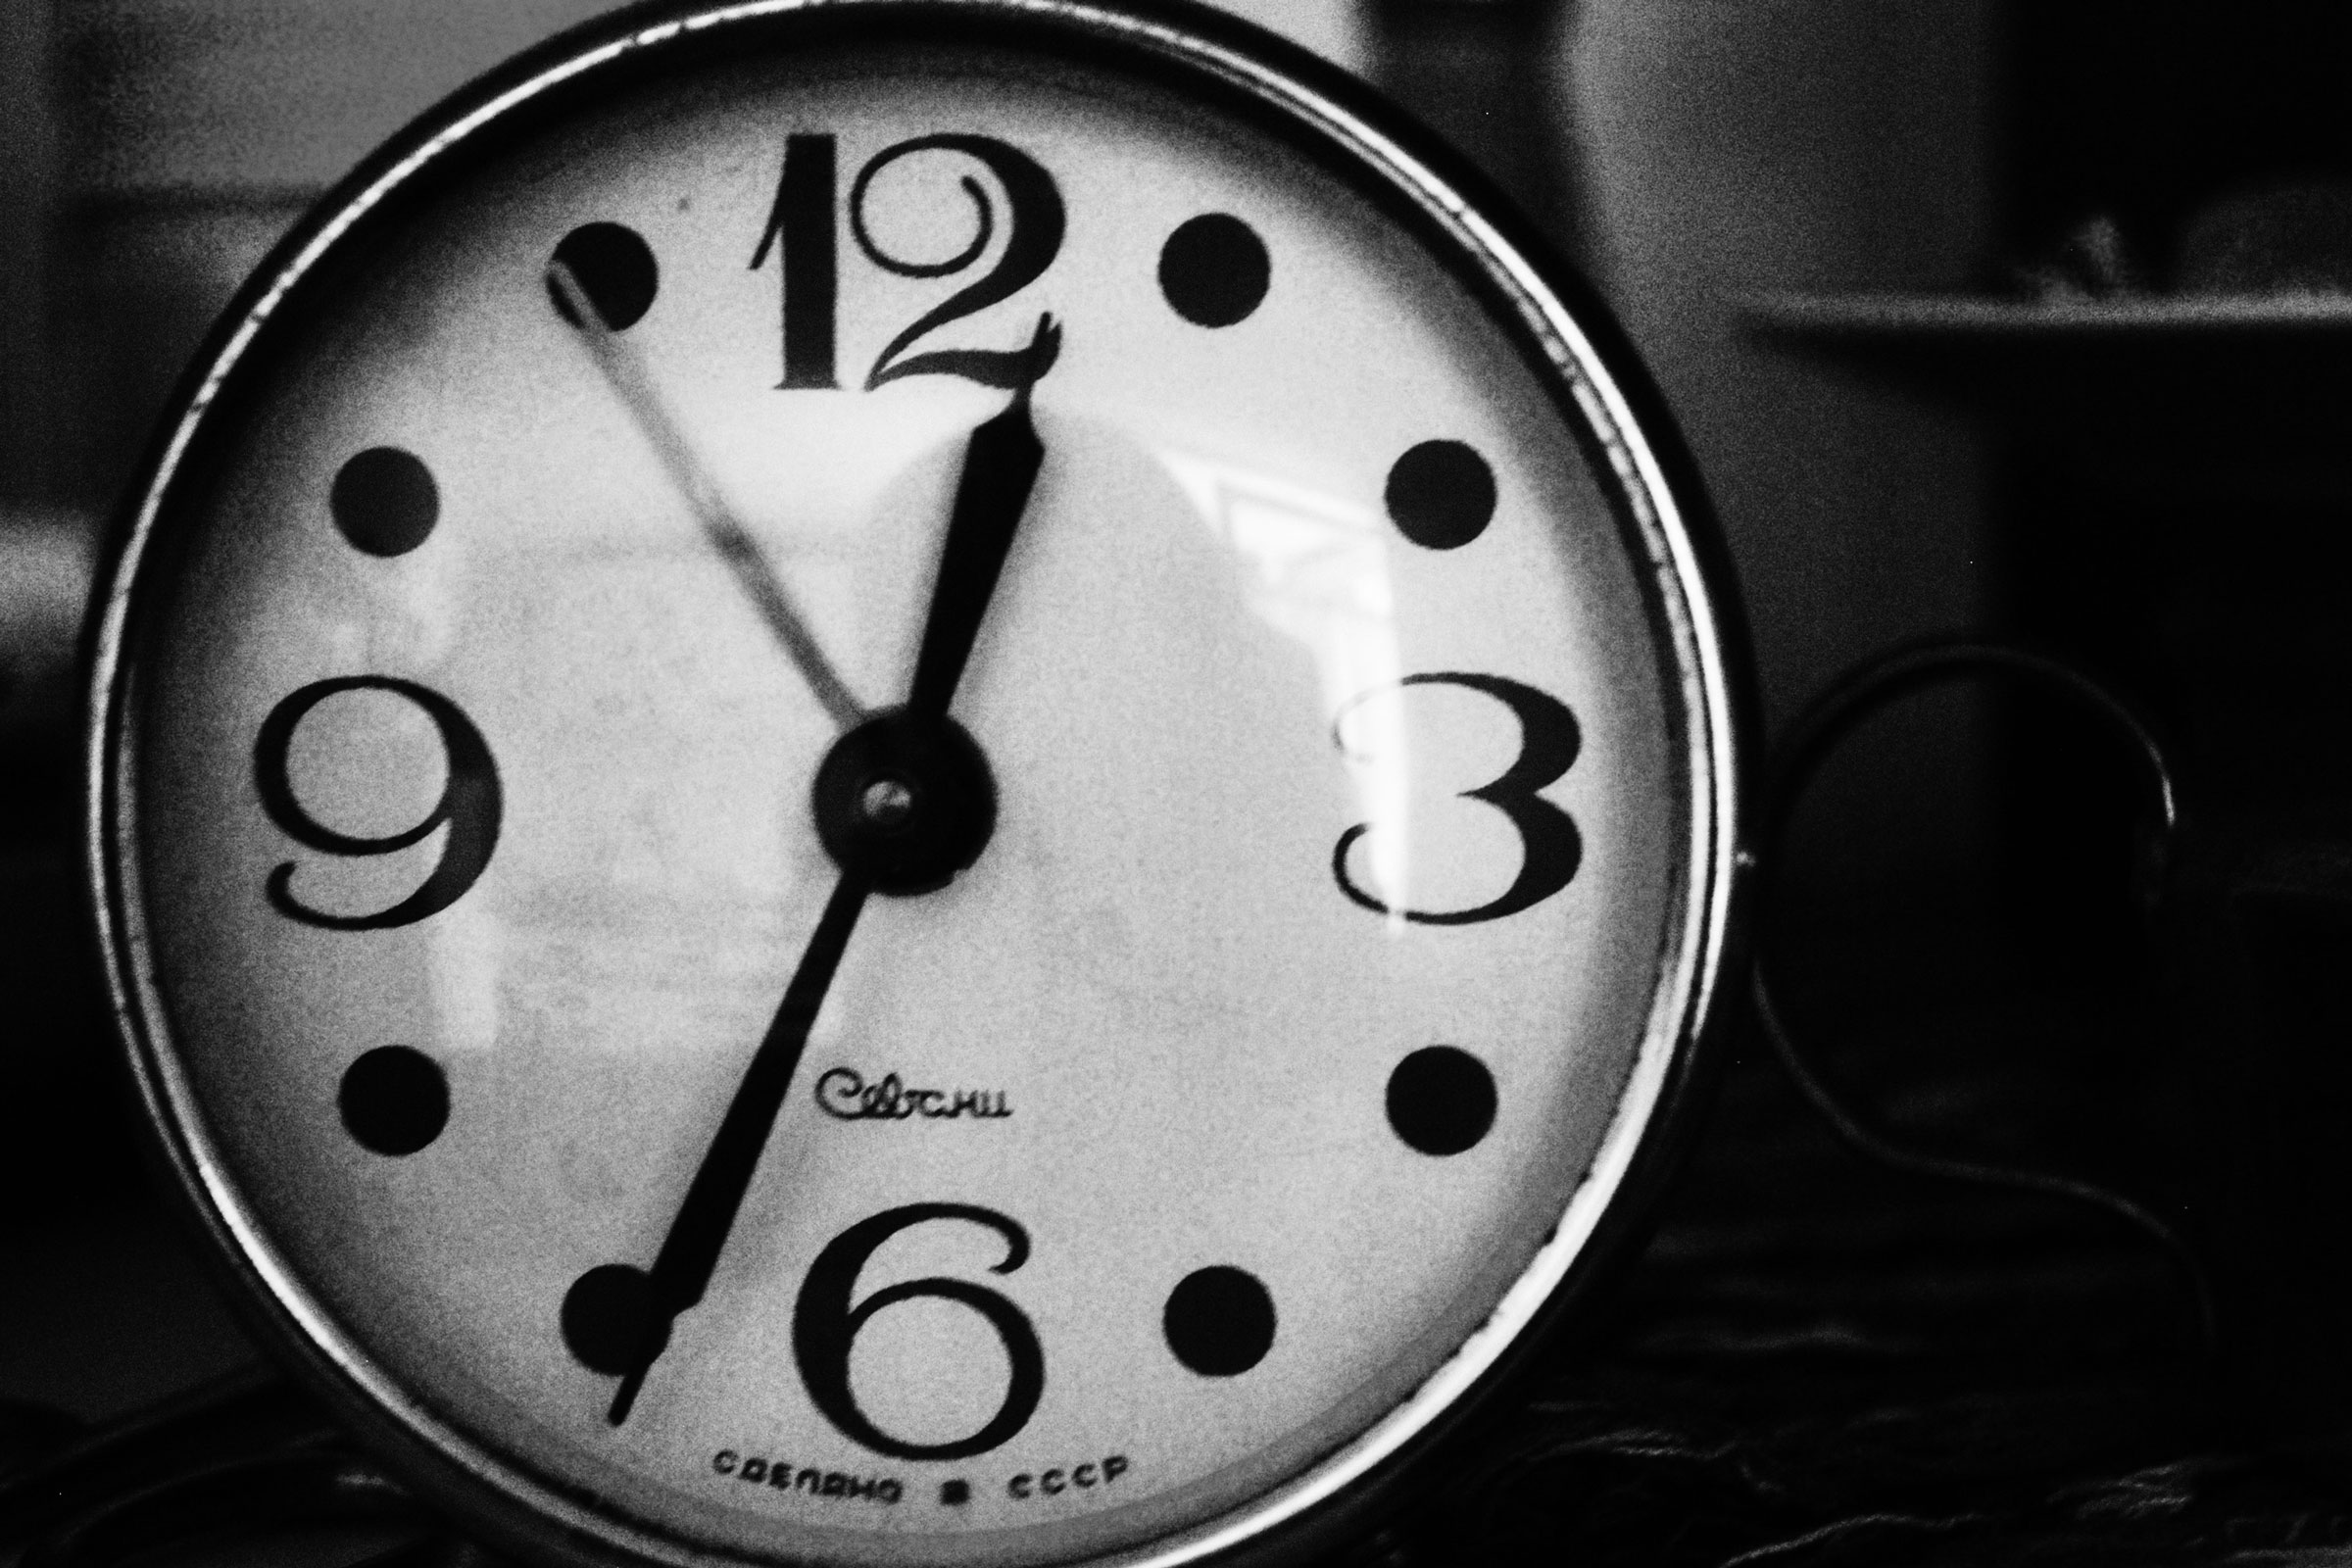 Photo: Black And White Clock Face | Public Domain